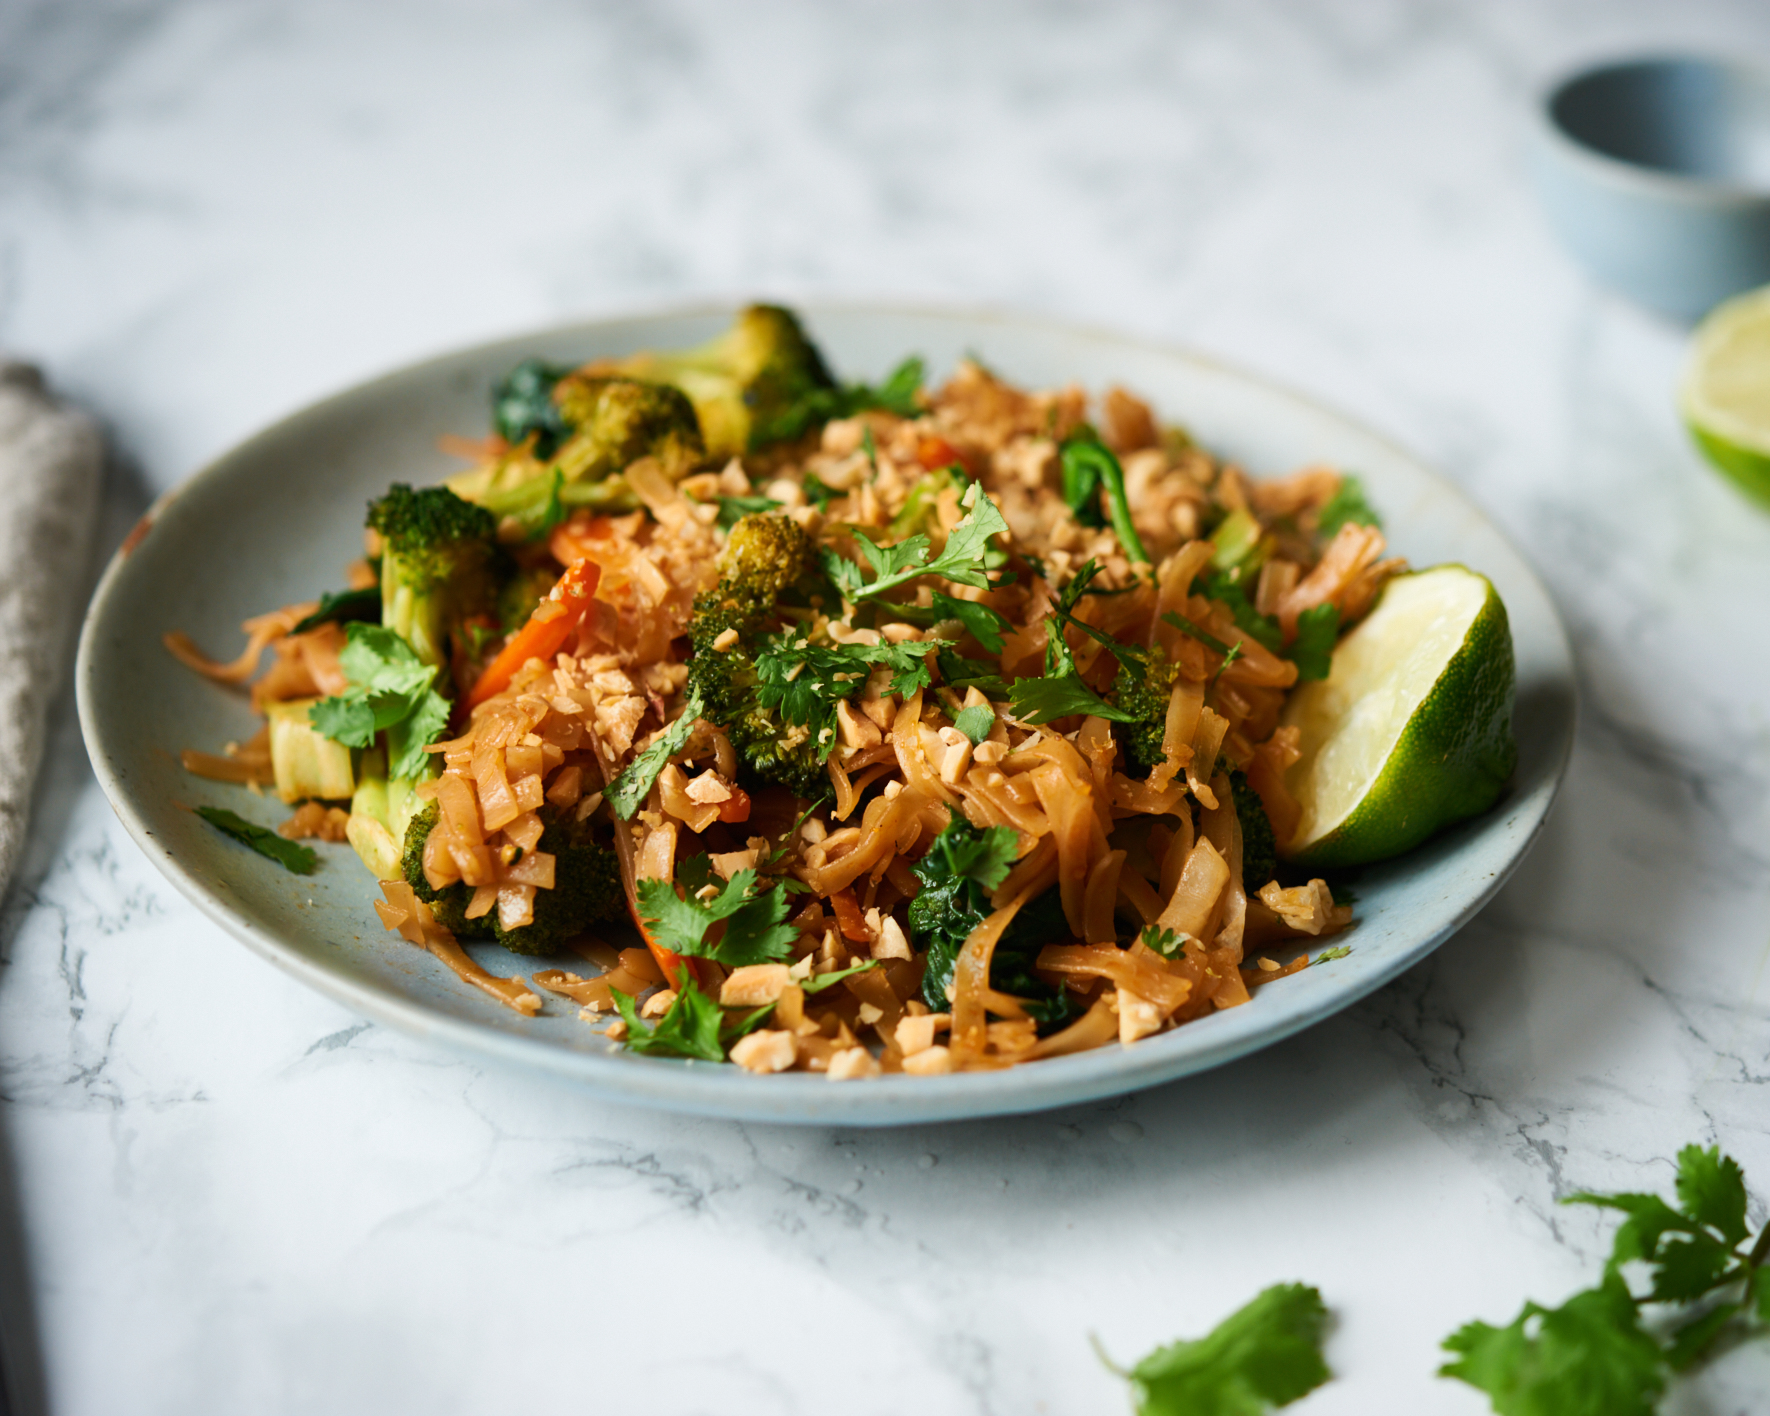 Make this recipe for vegan and gluten free pad thai.